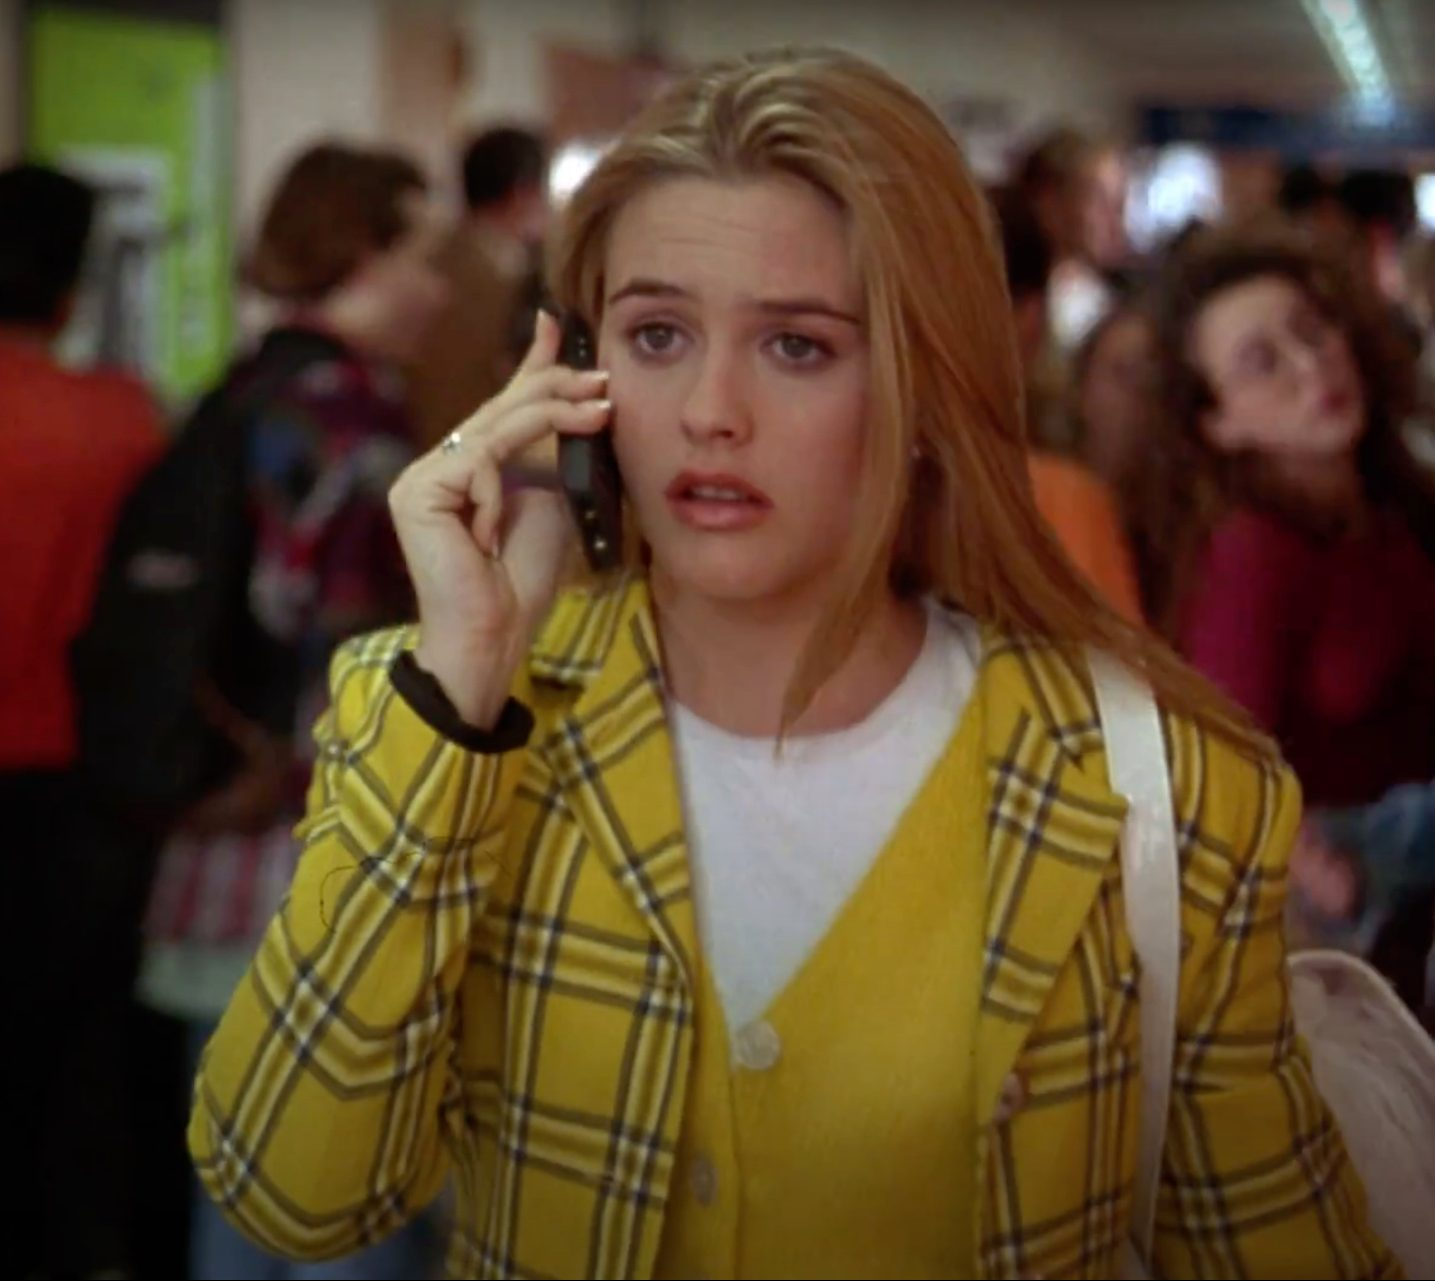 clueless 1 e1617105318419 20 Things You Probably Didn't Know About Clueless